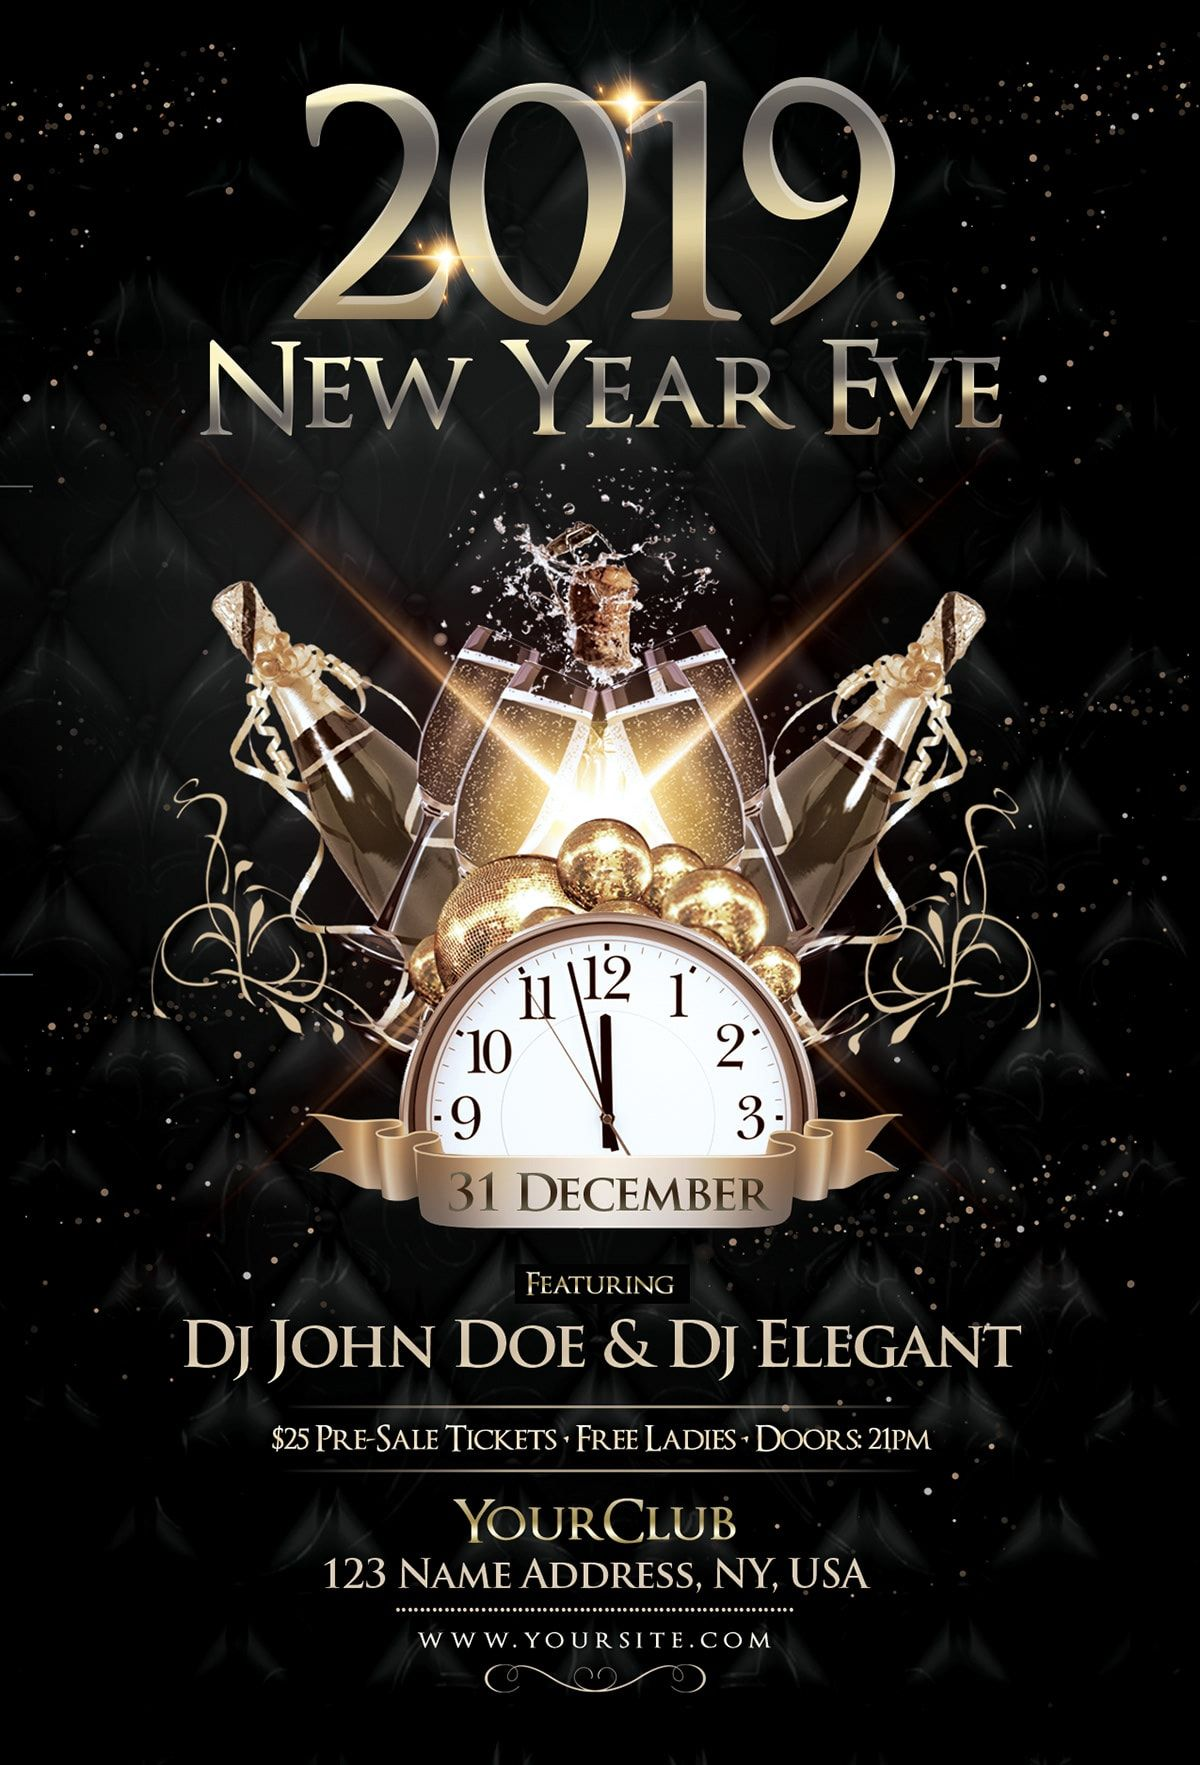 2019 Nye Event Free Psd Flyer Template